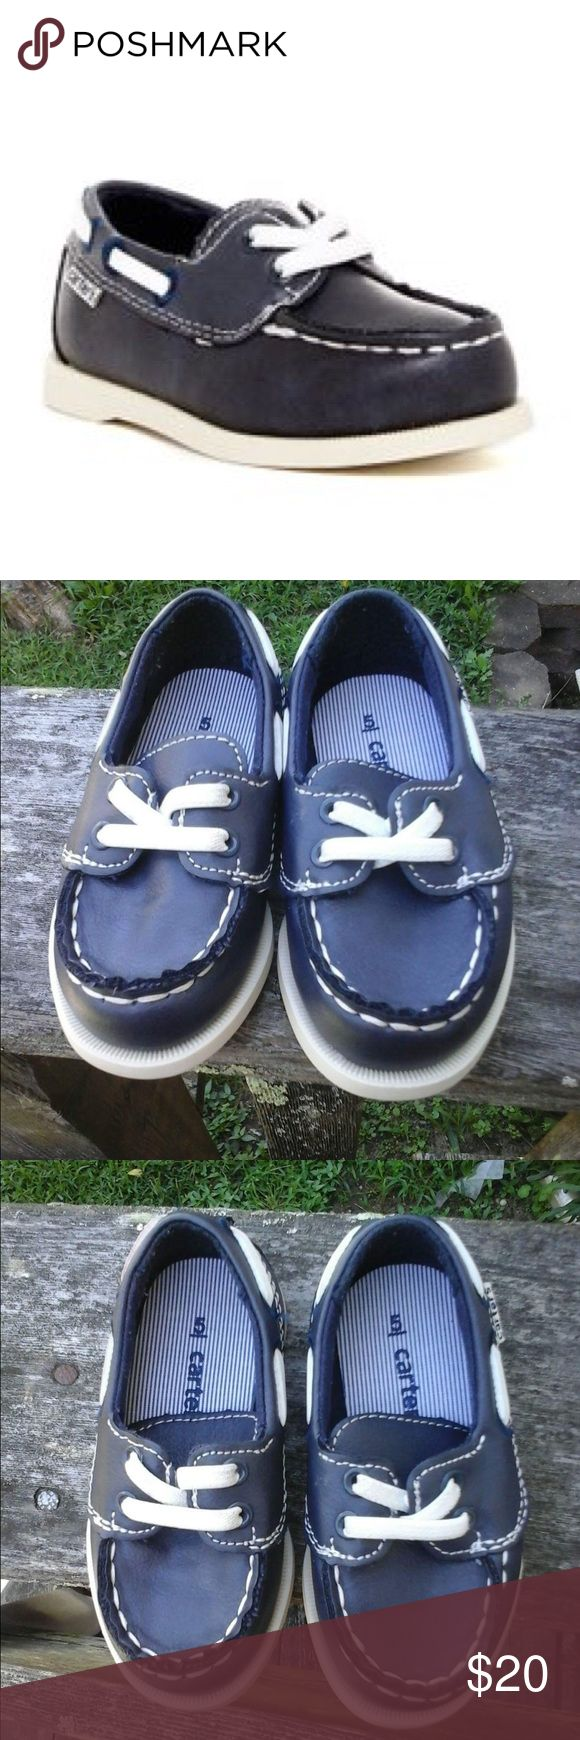 🎉🎉🎉🐯🦁🐻🐰🦊Carters boat Casual shoes for boys Use excellent condition carters boat shoes in navy blue size 5 I have two available let me know if you would want both I give you a price worn only twice as you could see in the pics Carter's Shoes Baby & Walker